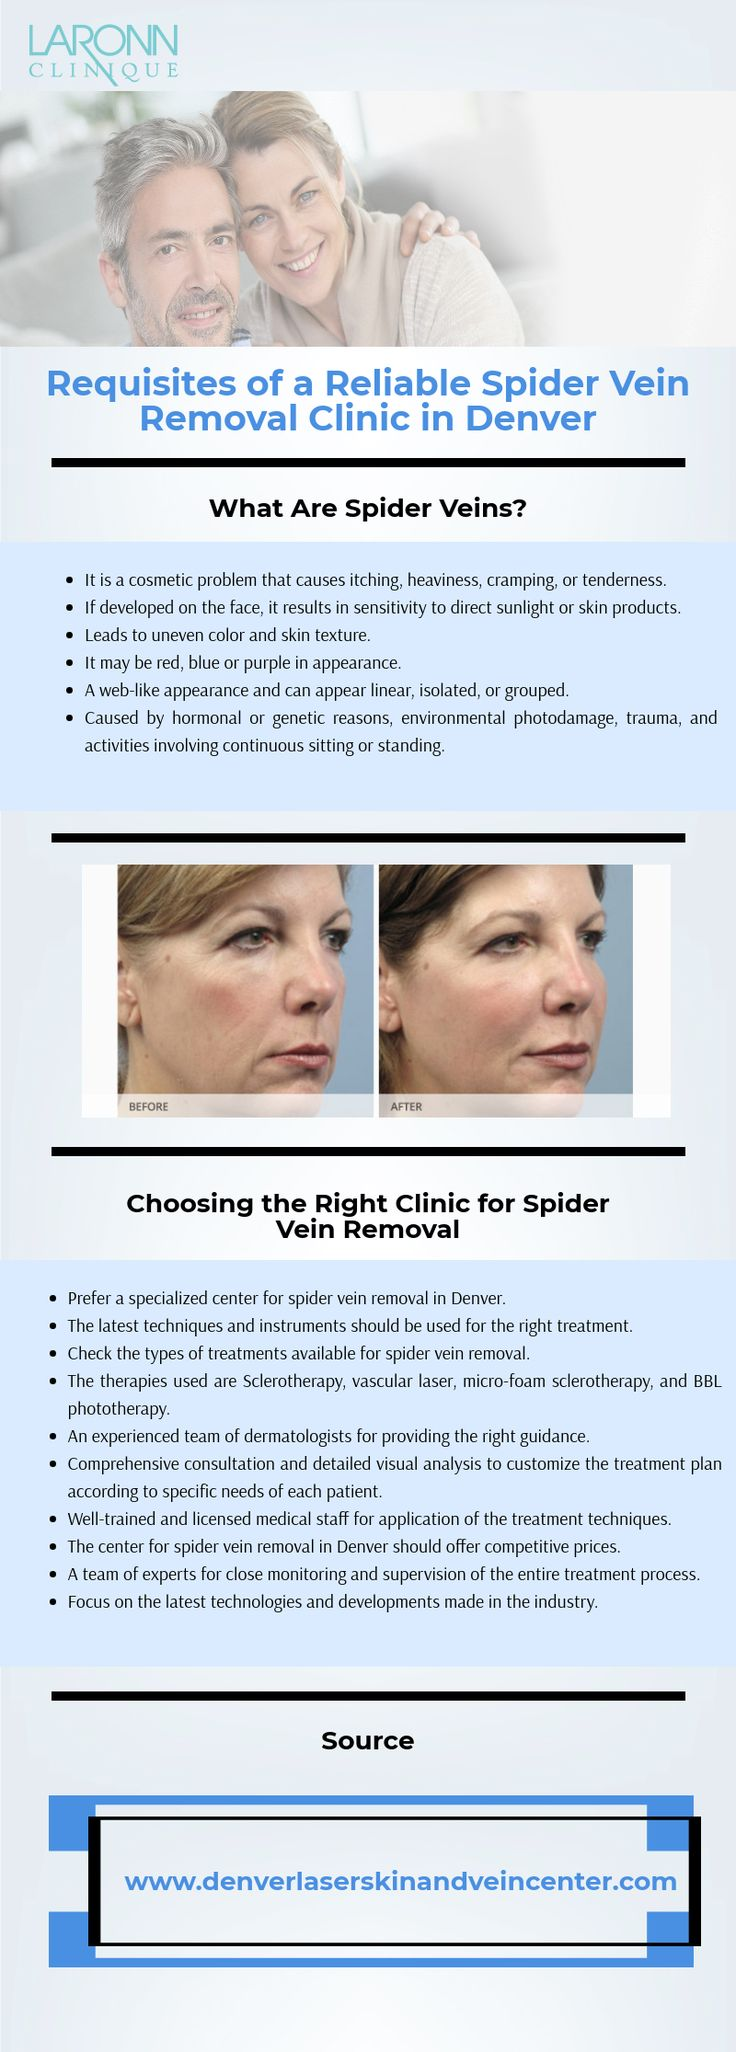 Requisites of a Reliable Spider Vein Removal Clinic in Denver  Check the types of treatments available for spider vein removal. The therapies used are Sclerotherapy, vascular laser, micro-foam sclerotherapy, and BBL phototherapy.   For more details visit: http://www.denverlaserskinandveincenter.com/spider-vein-treatment/